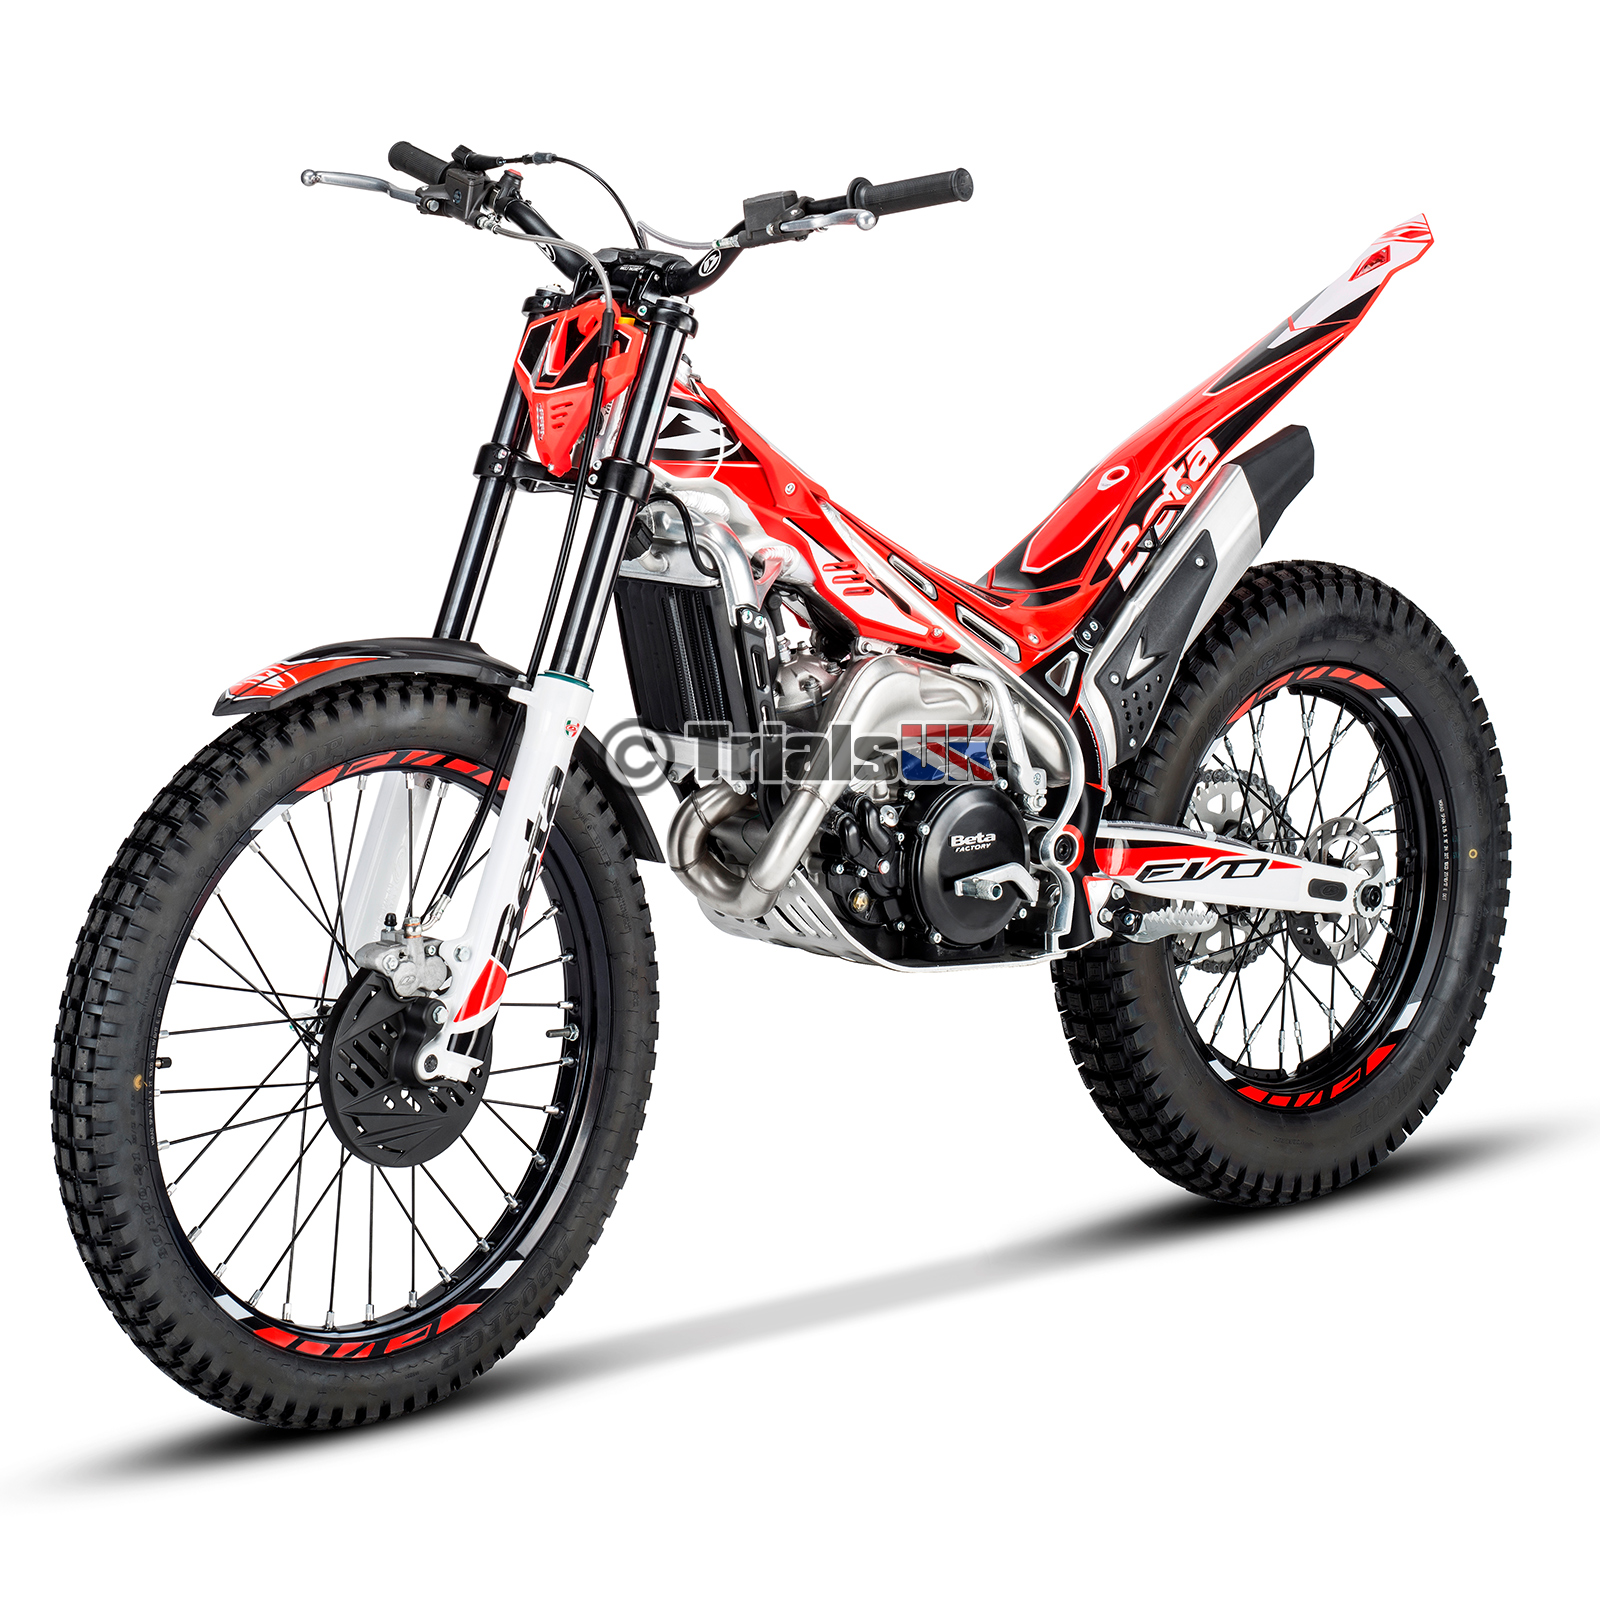 Trials Uk Motorcycle Wiring Original No Longer Available In Pocket Bike Forum Mini 2019 Beta Evo 125